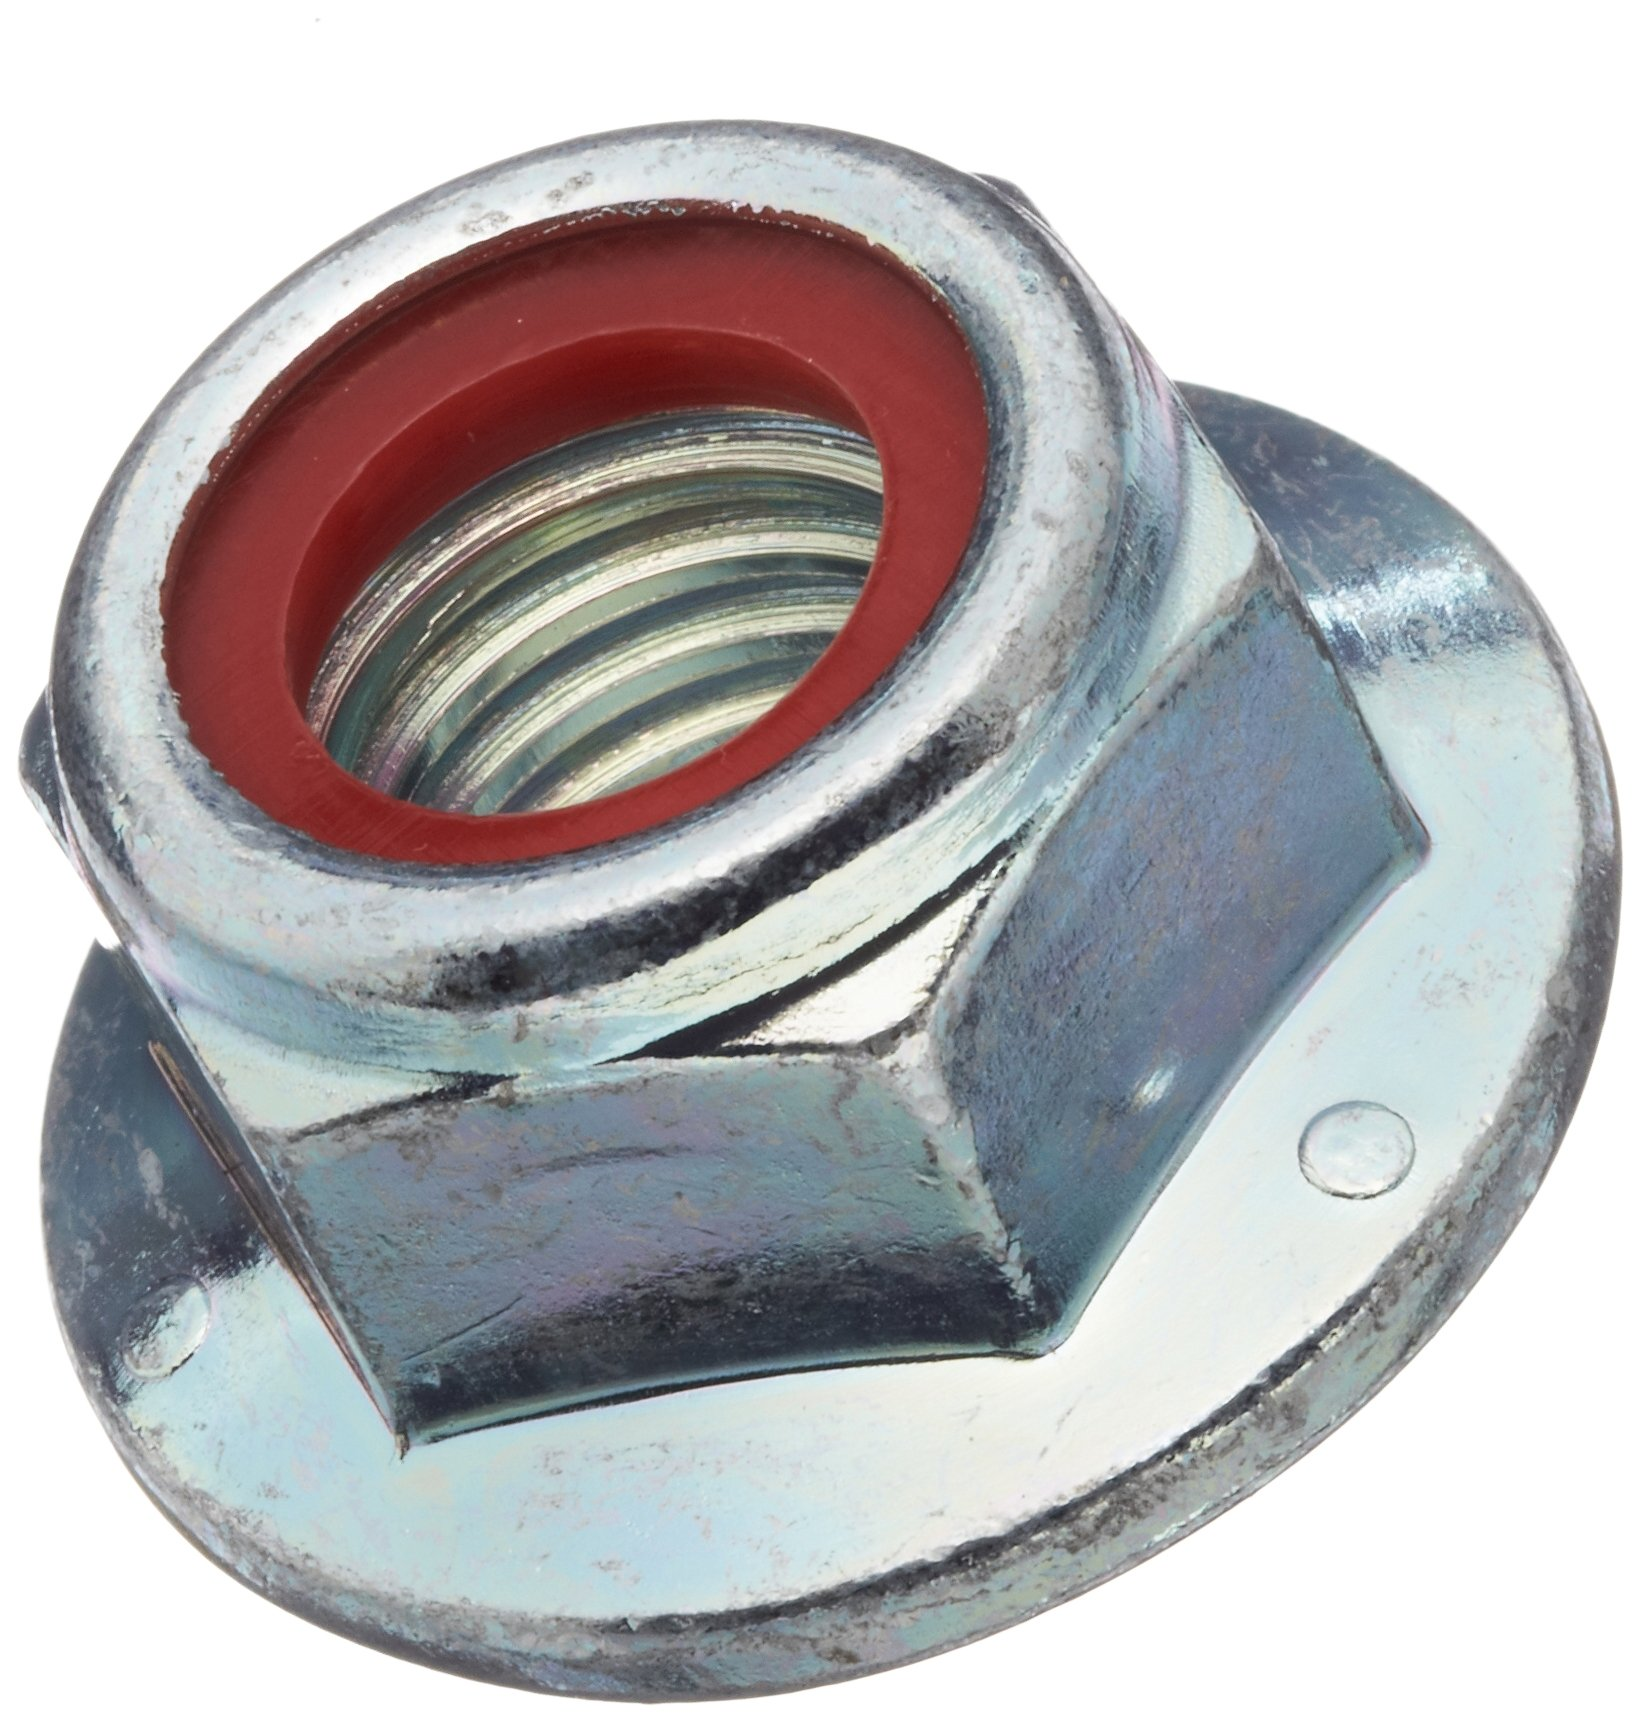 Steel Flange Nut, Zinc Plated Finish, Grade 2, Self-Locking Nylon Insert, Right Hand Threads, 1/2''-13 Threads, 0.866'' Width Across Flats (Pack of 25) by Small Parts